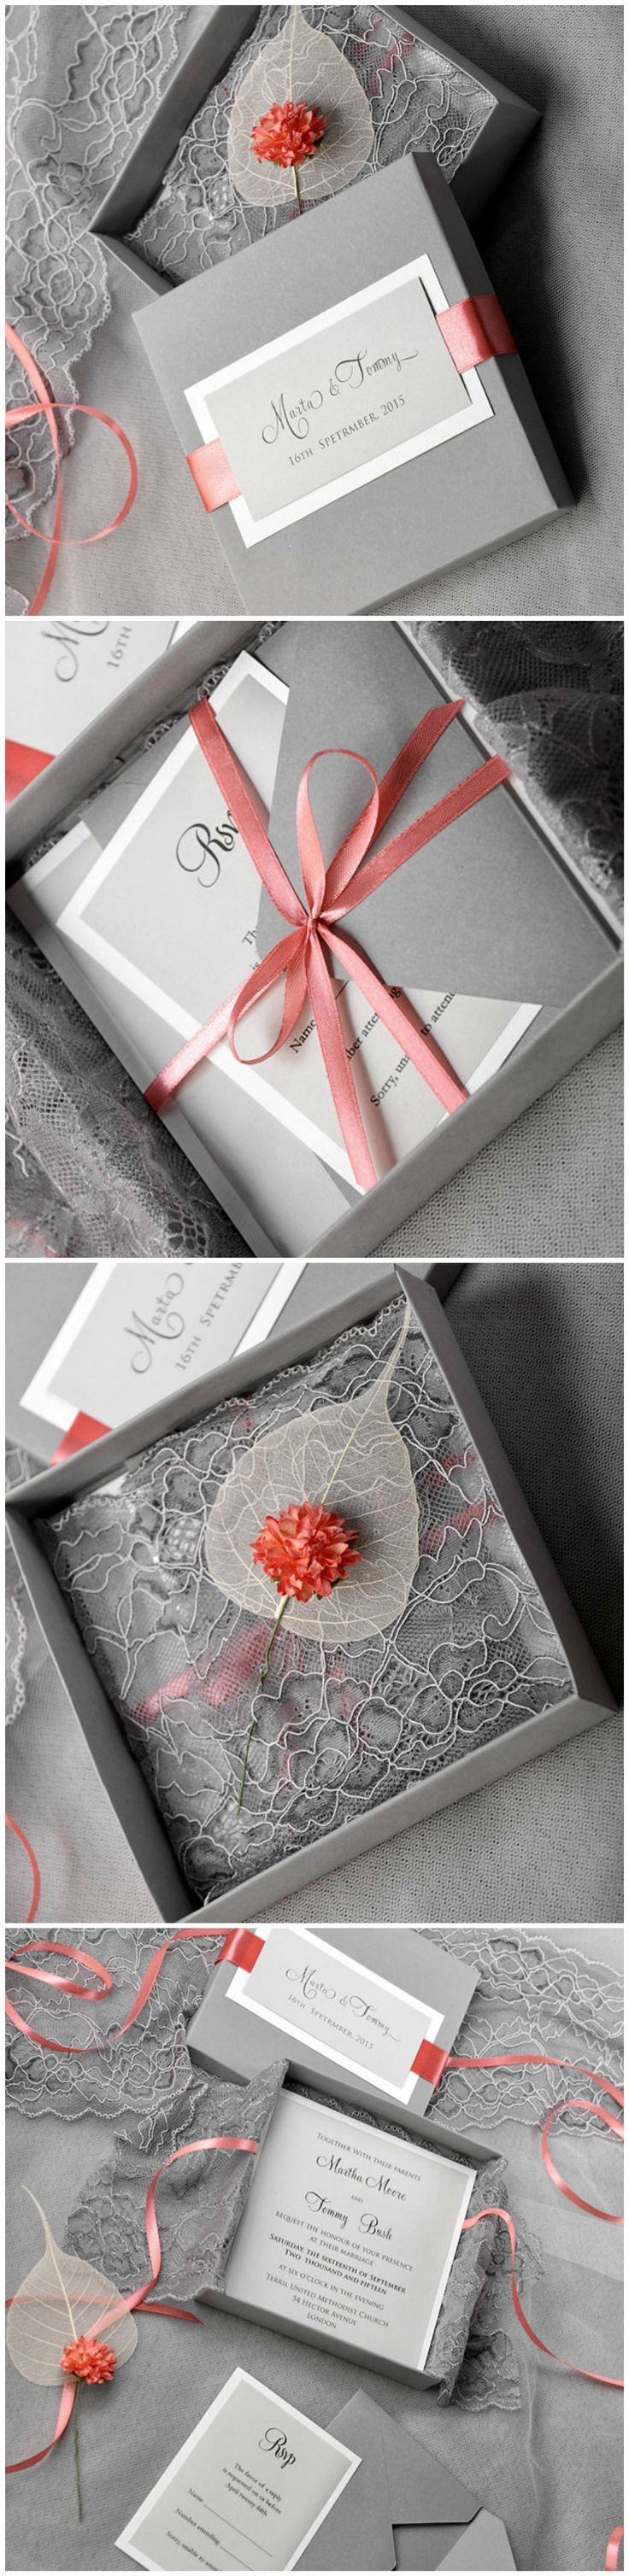 Grey Lace Wedding Invitation in a box #grey #weddingideas #lace #romantic #weddinginvitations #elegant #shadesofgrey #wedding #coral #flower